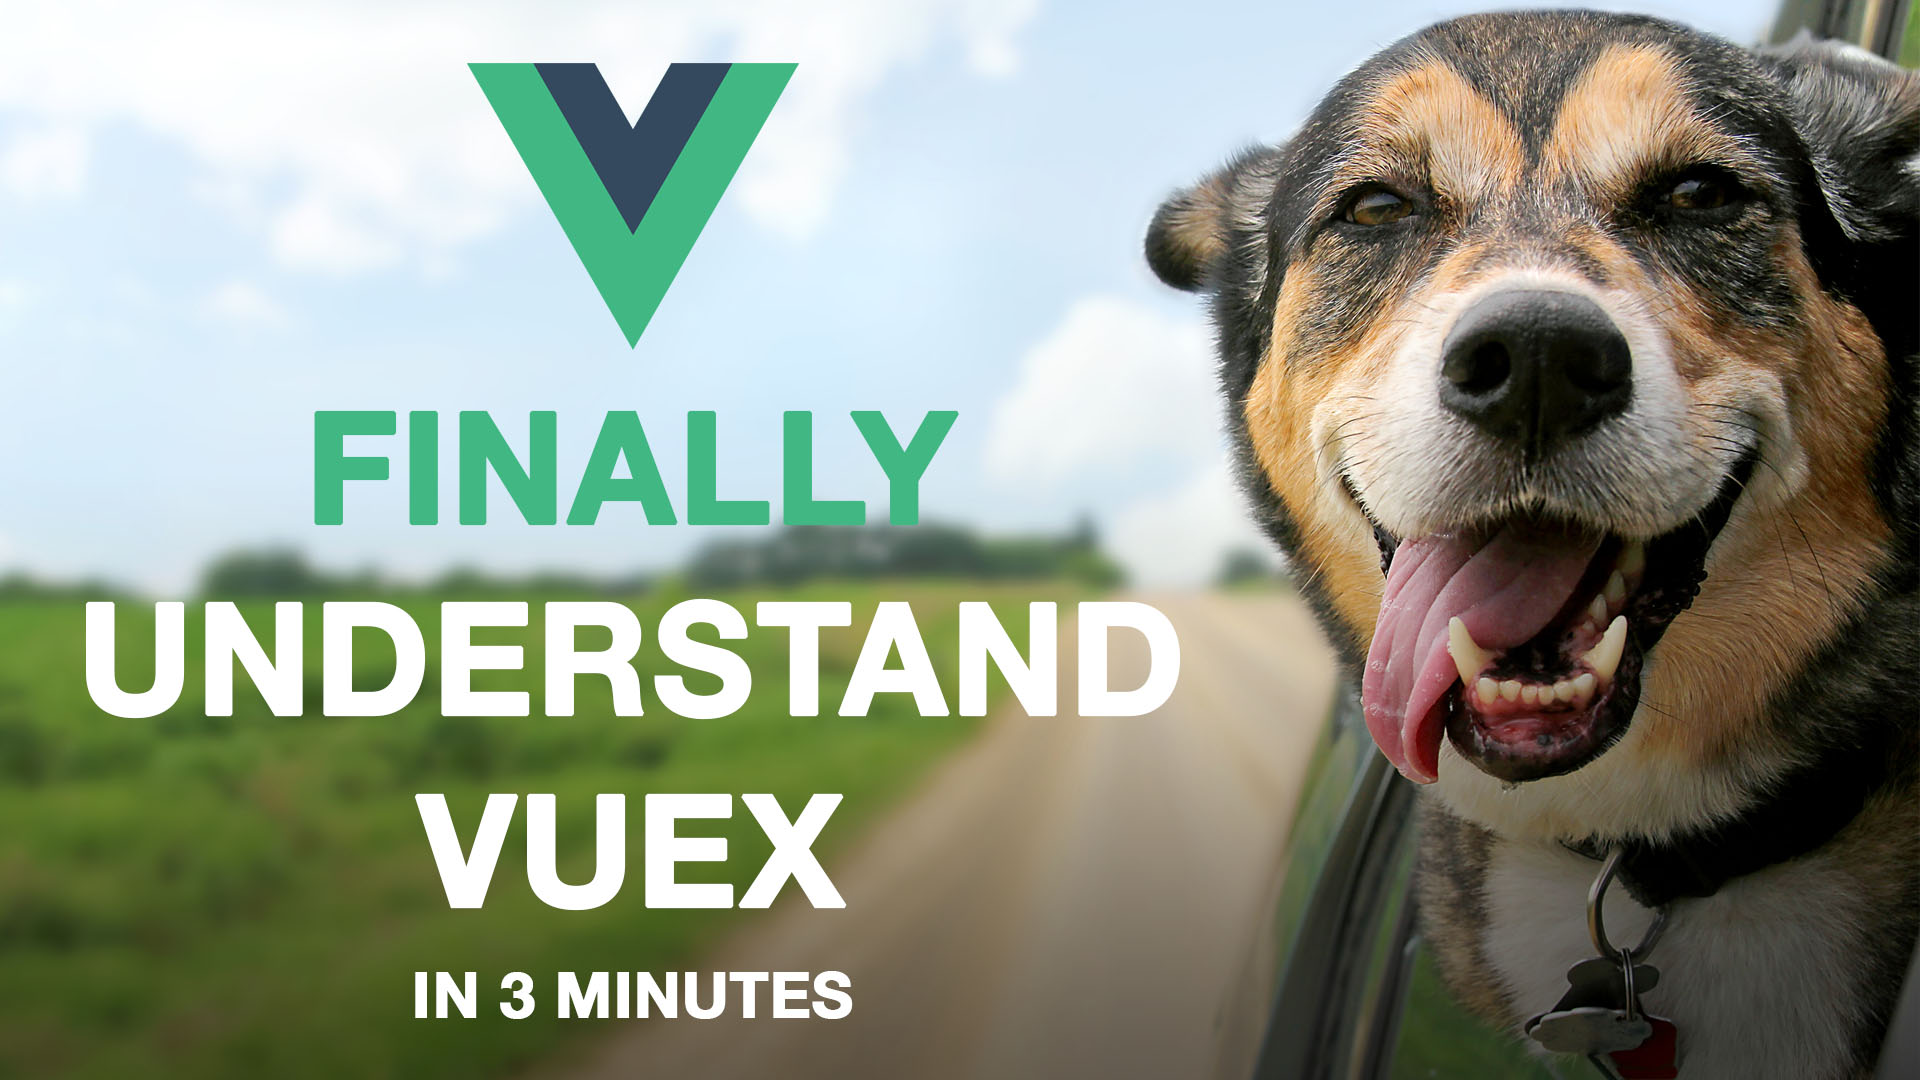 What is Vuex?